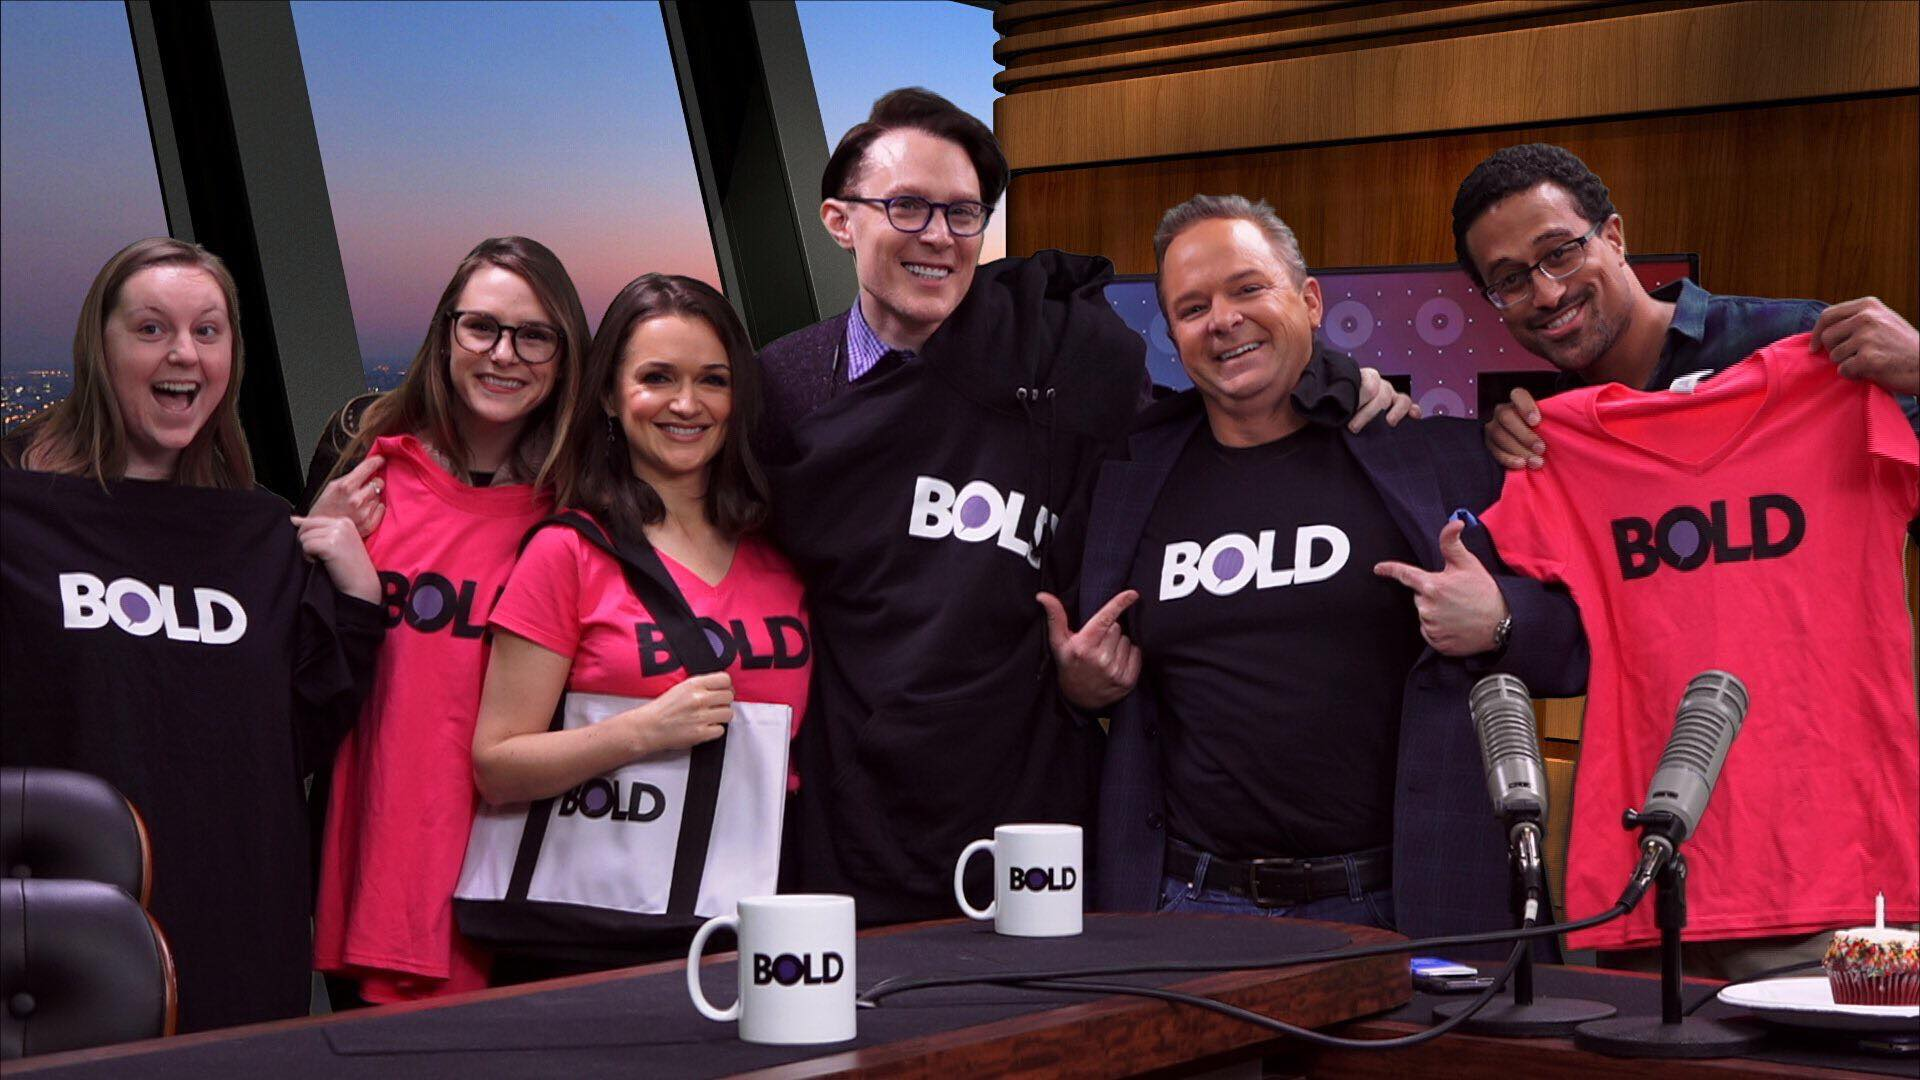 The Bold gang